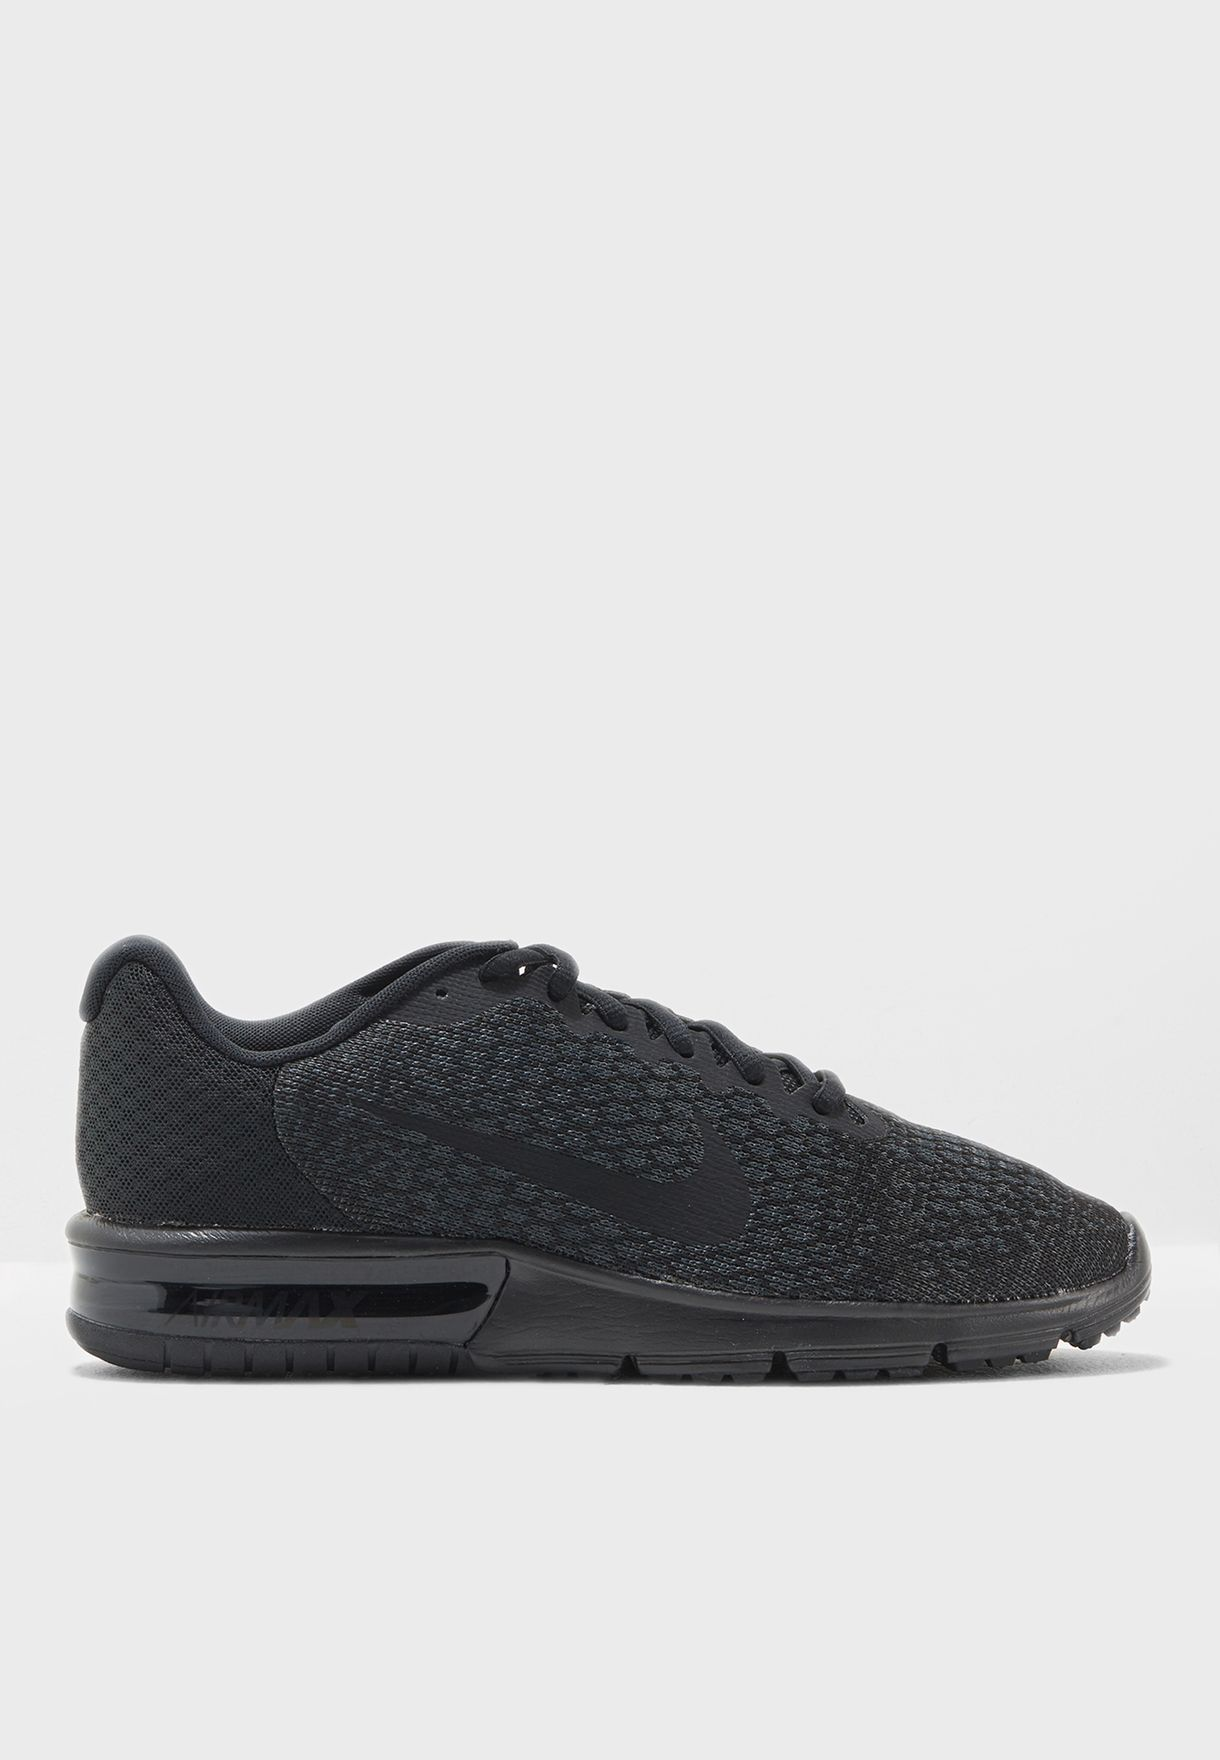 2405c4bb3ade4 Shop Nike black Air Max Sequent 2 852461-015 for Men in UAE ...